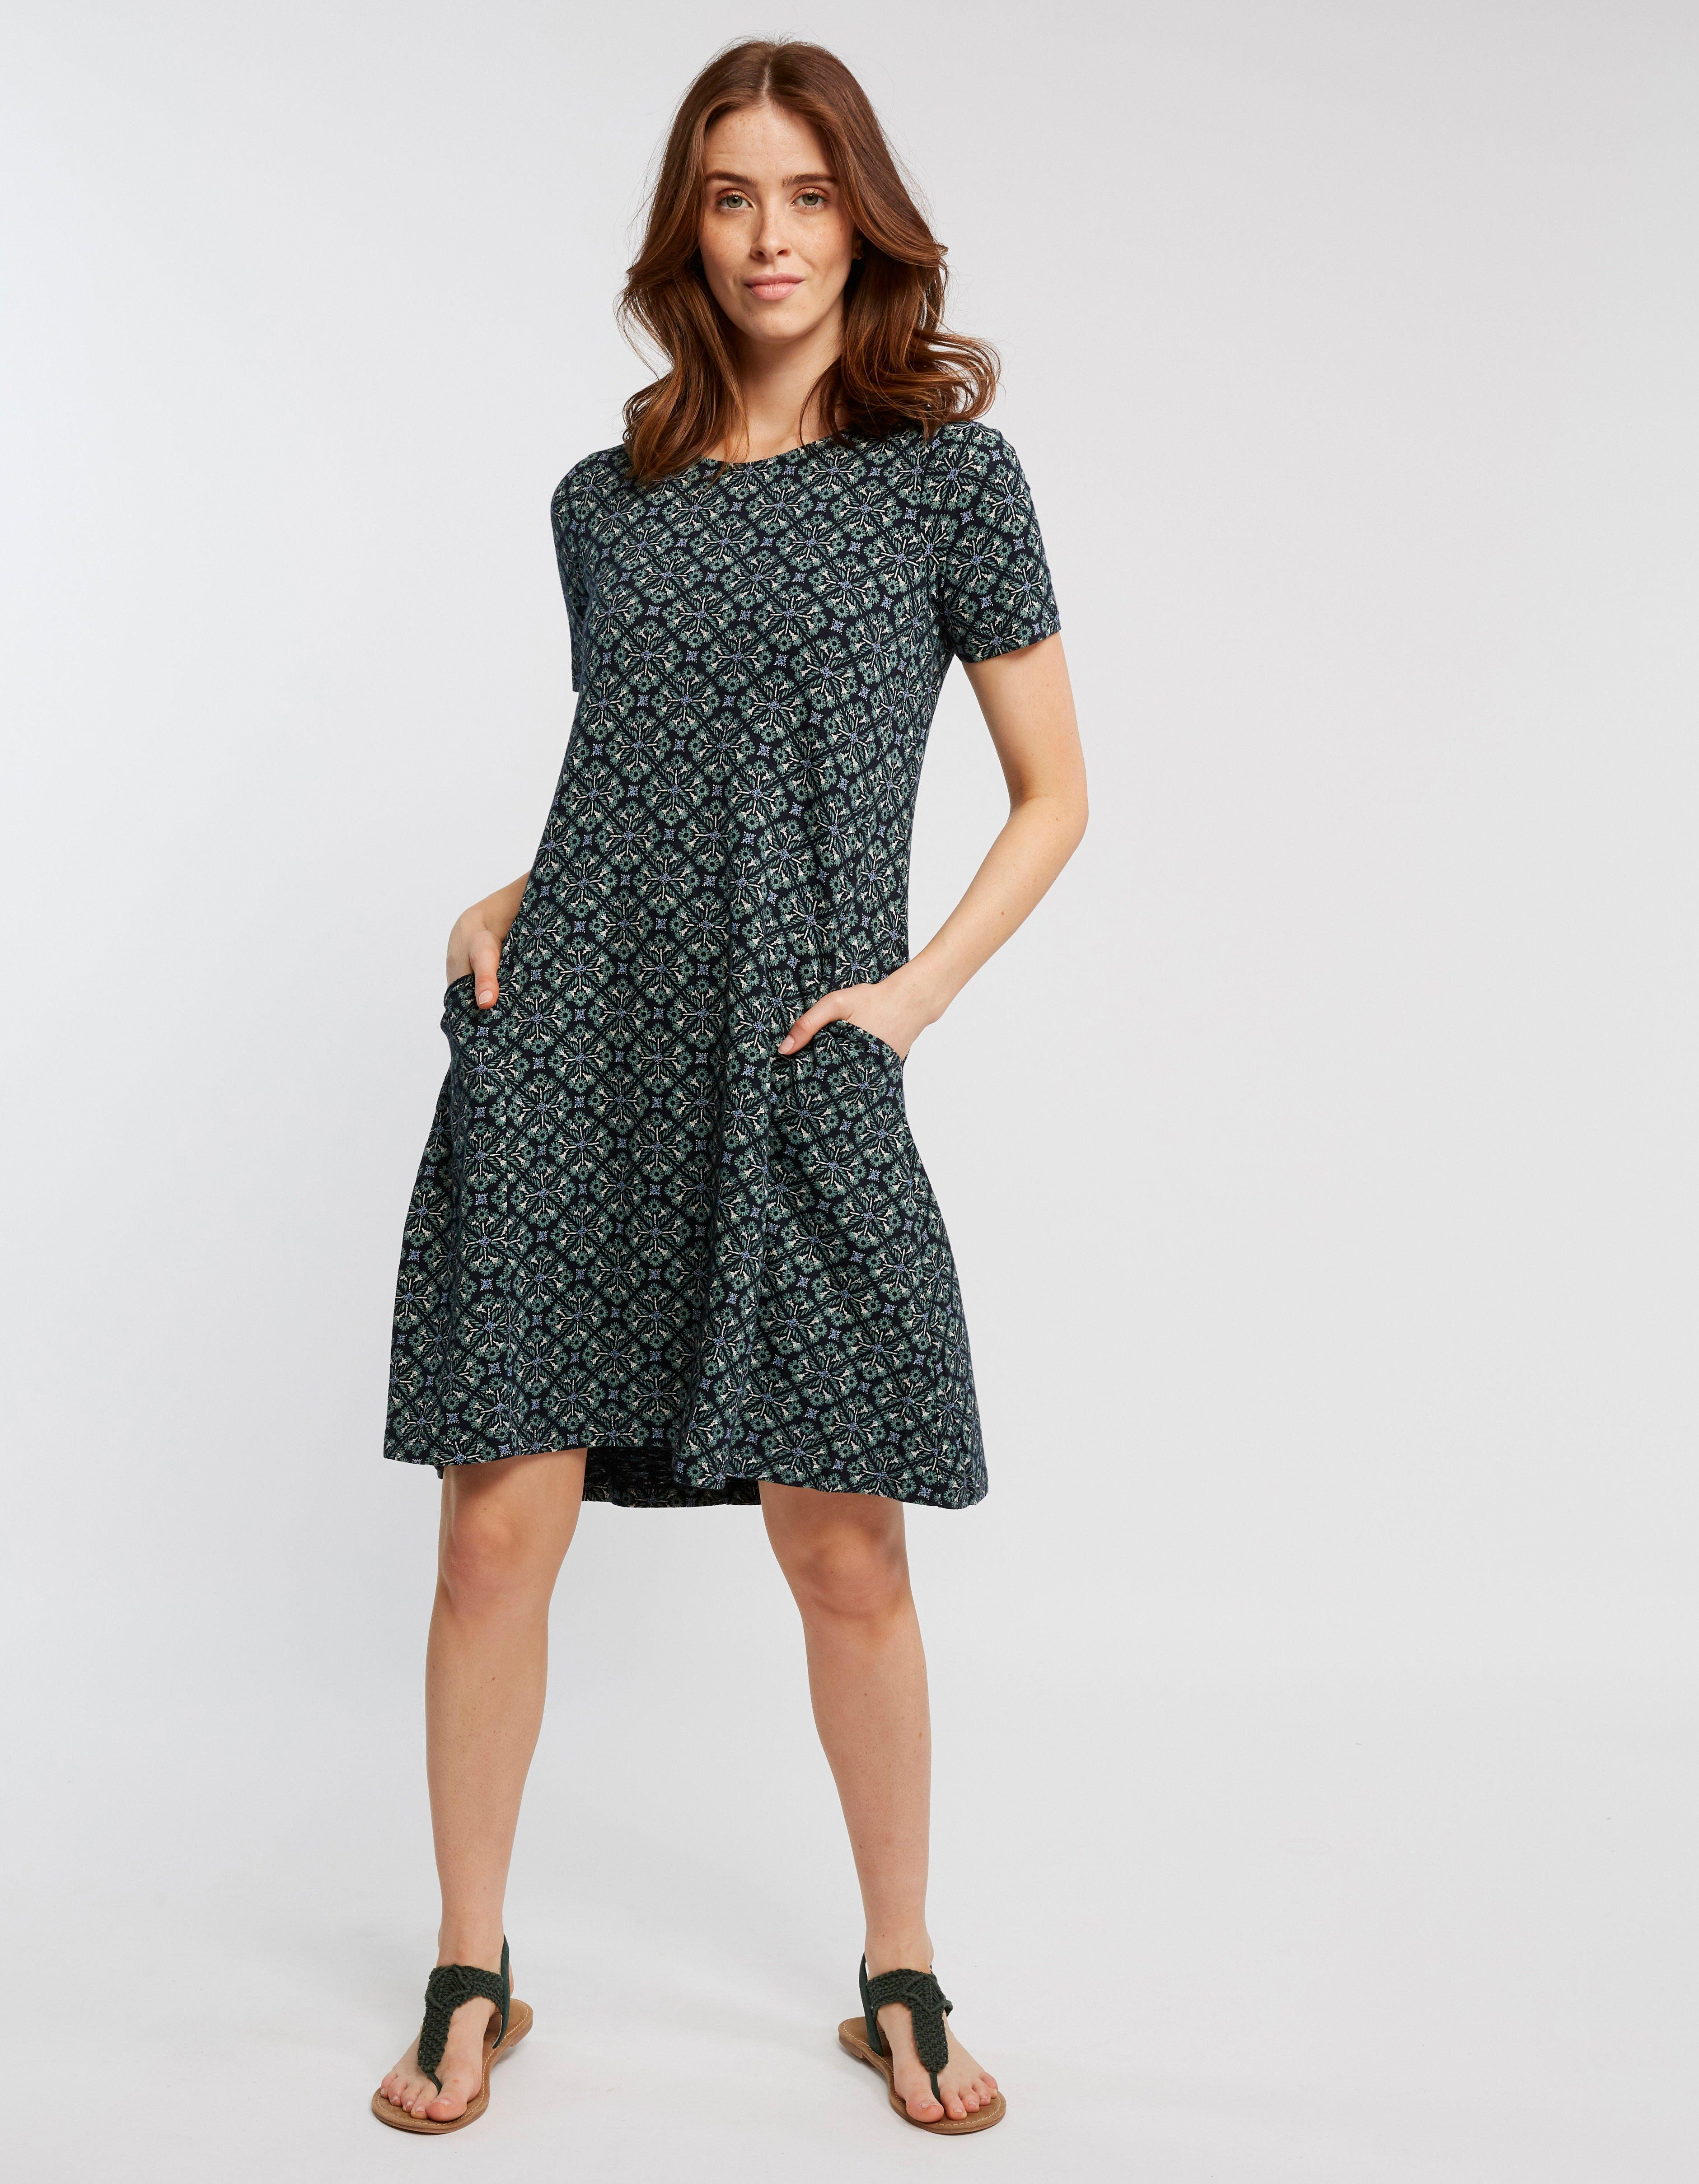 Fatface Tunic Dress